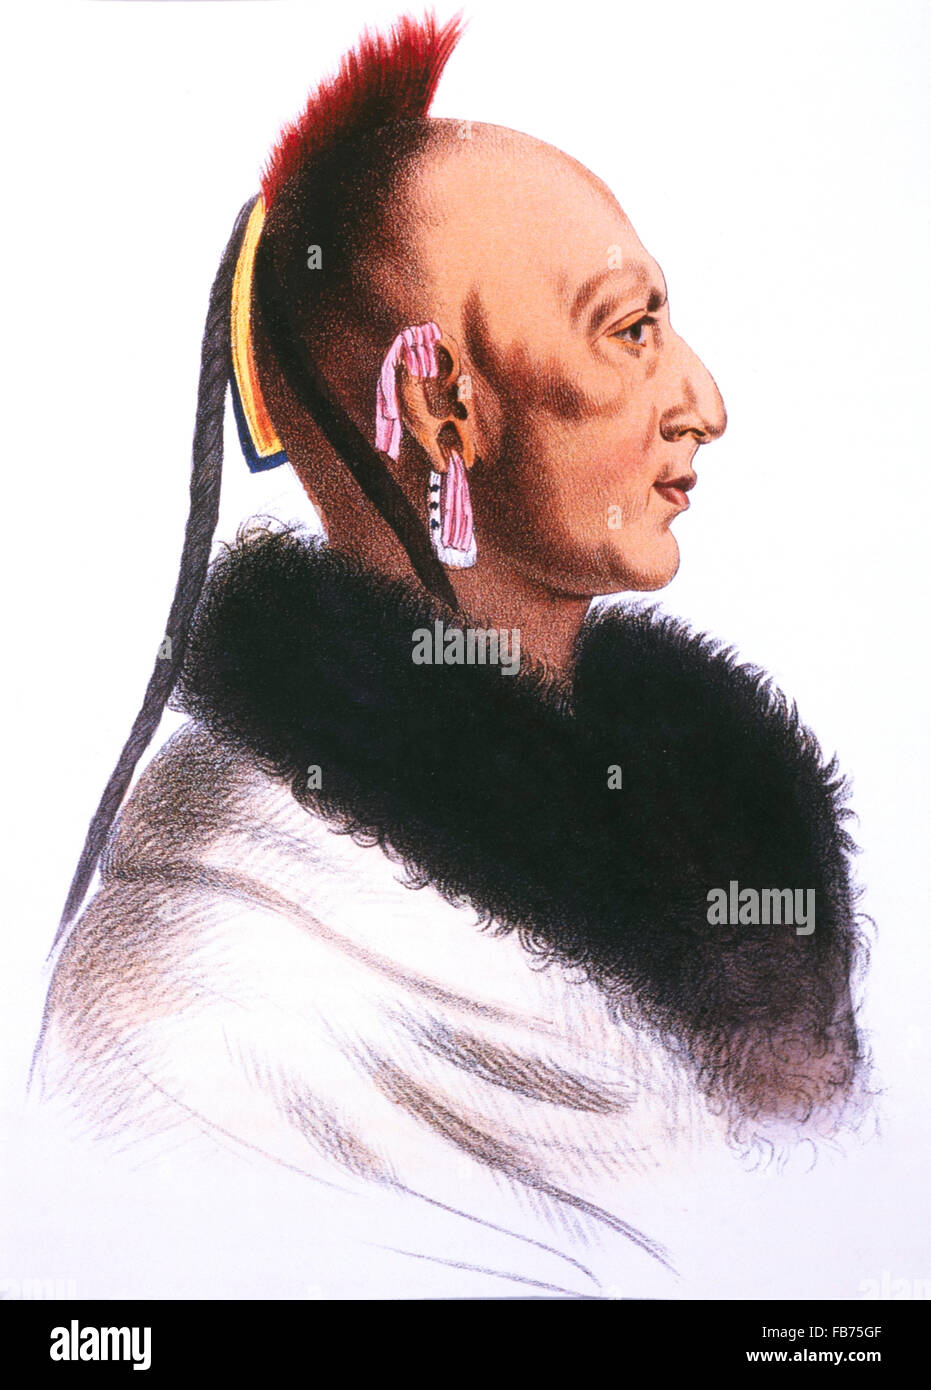 Le Soldat du Chene, Osage Chief, Lithograph by McKinney and Hall after a Painting by Charles de Saint-Memin, circa - Stock Image